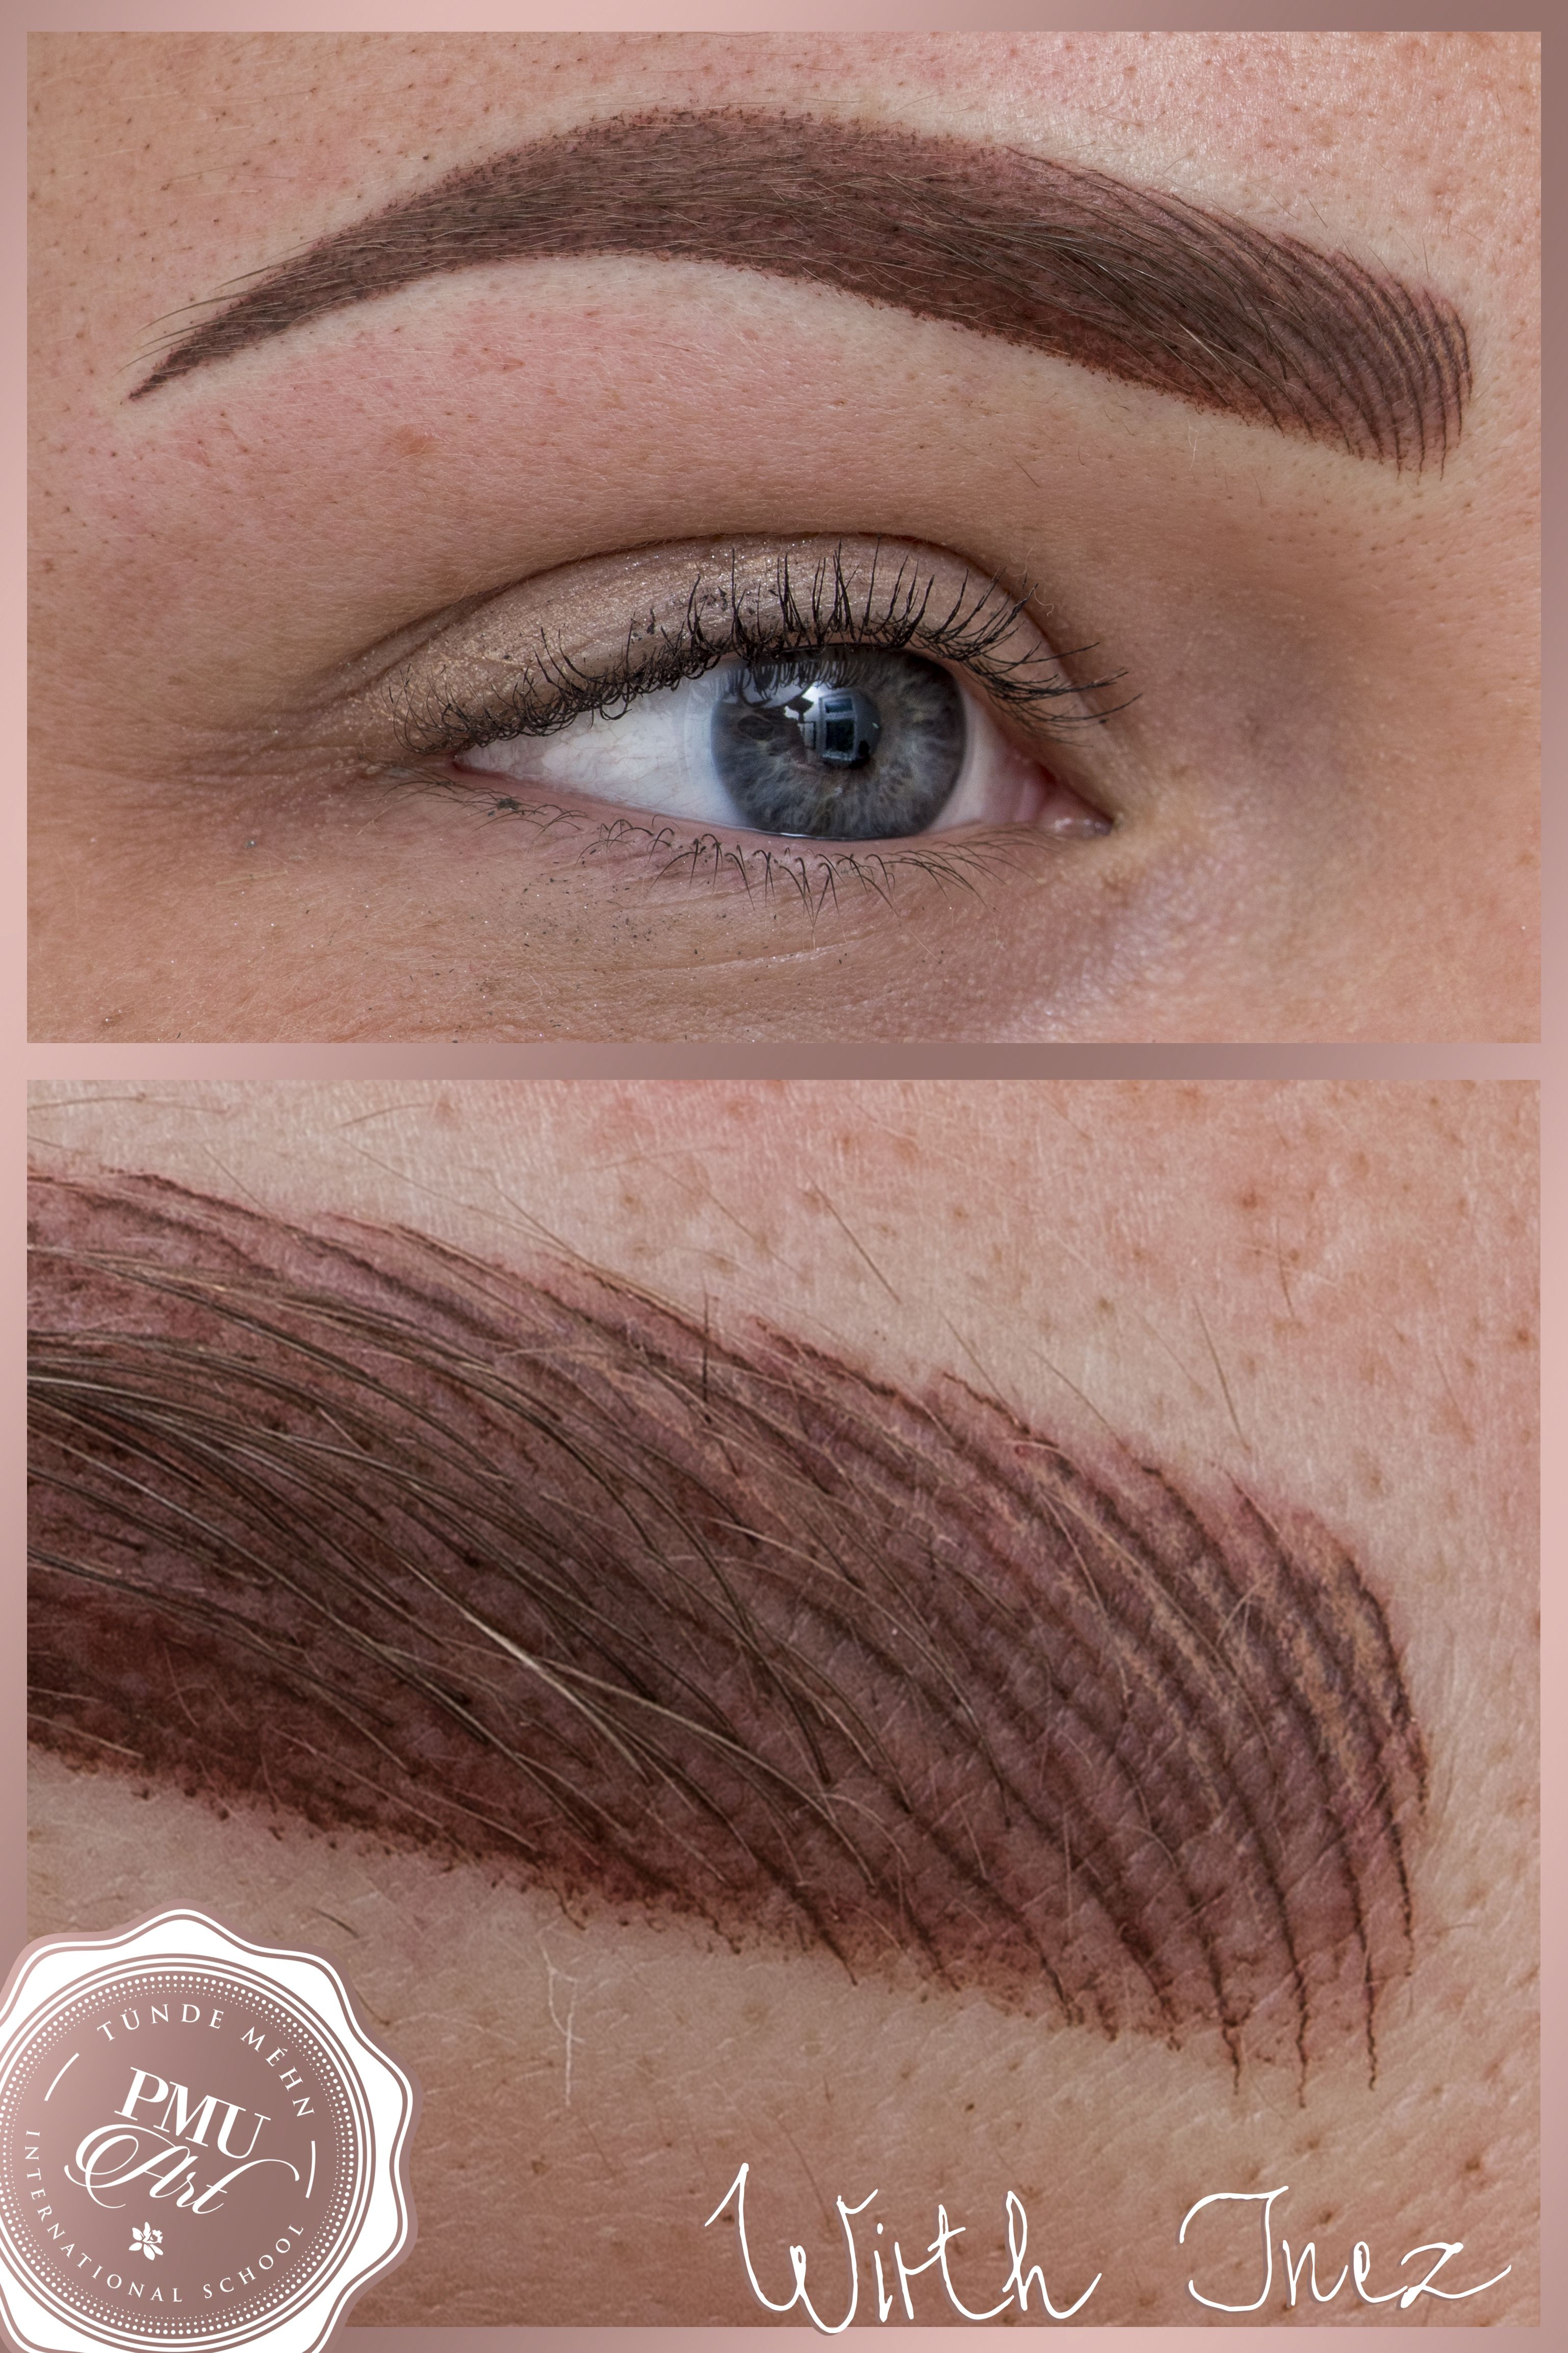 3d Hair Stroke Permanent Makeup Eyebrows : stroke, permanent, makeup, eyebrows, Combined, Eyebrow, Tattoo,, Hairstroke, Ombre, Technique, Mixed, Shaping,, Shape,, Sparse, Eyebrows